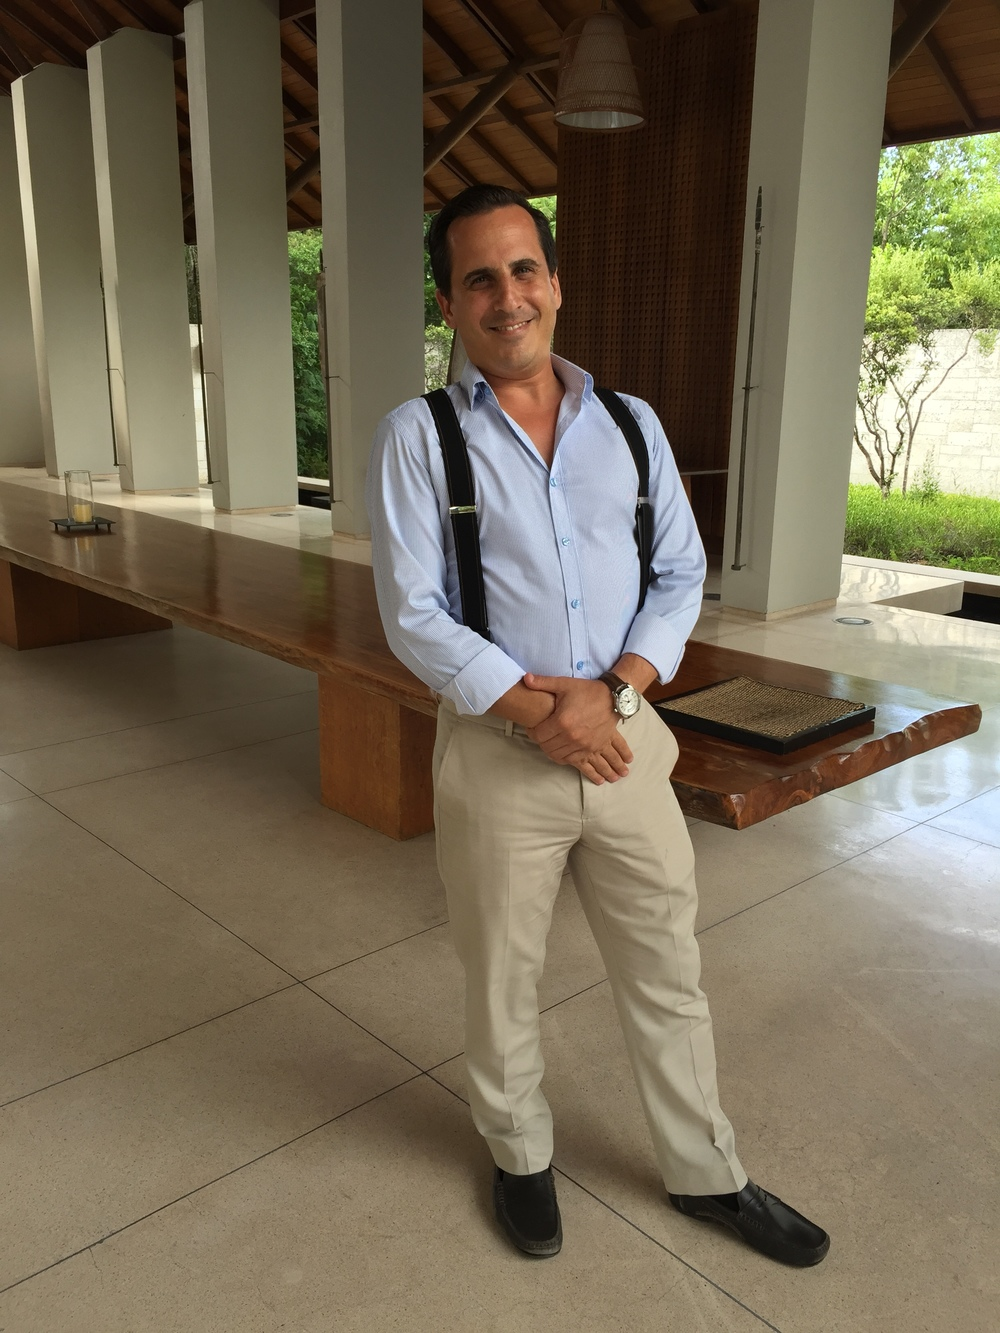 Serge from Switzerland, Amanyara's lovely Resort Manager who always matches his braces to his socks